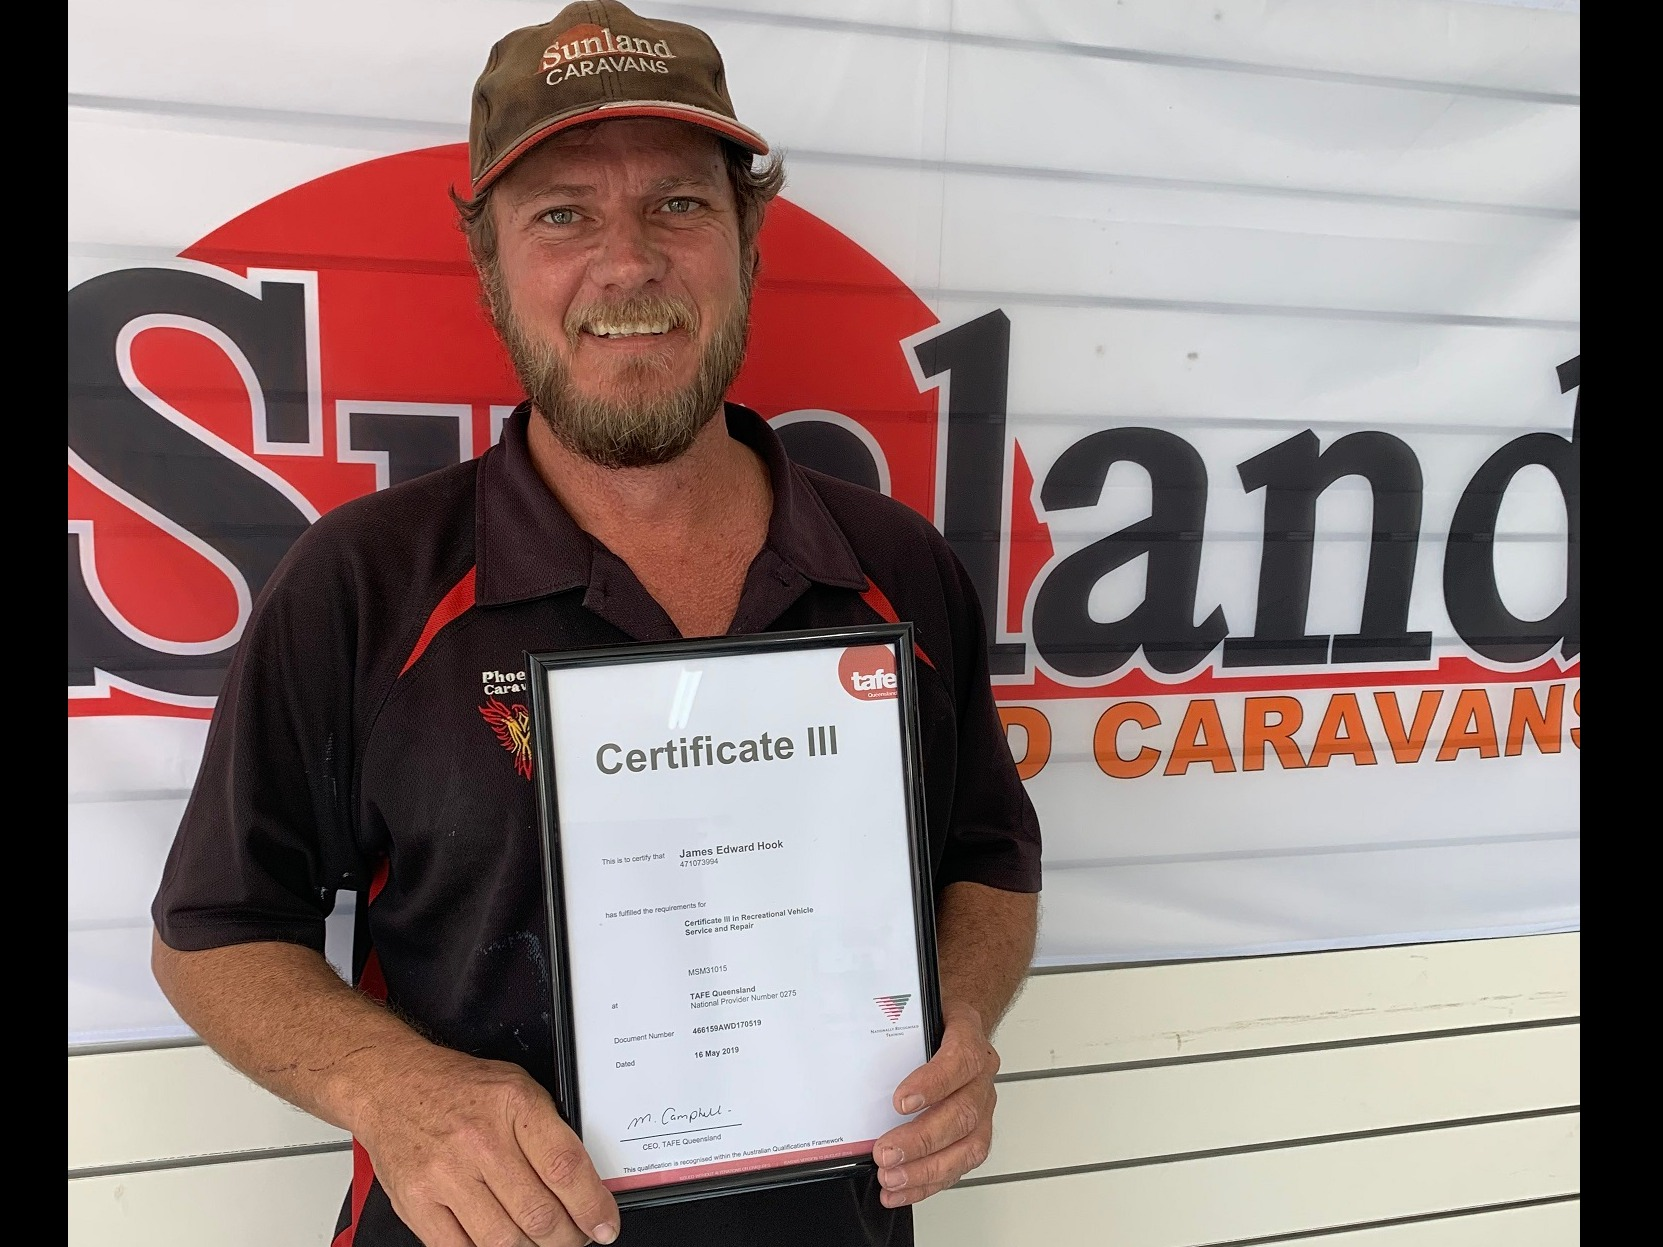 Sunland Caravans Service Manager James Hook